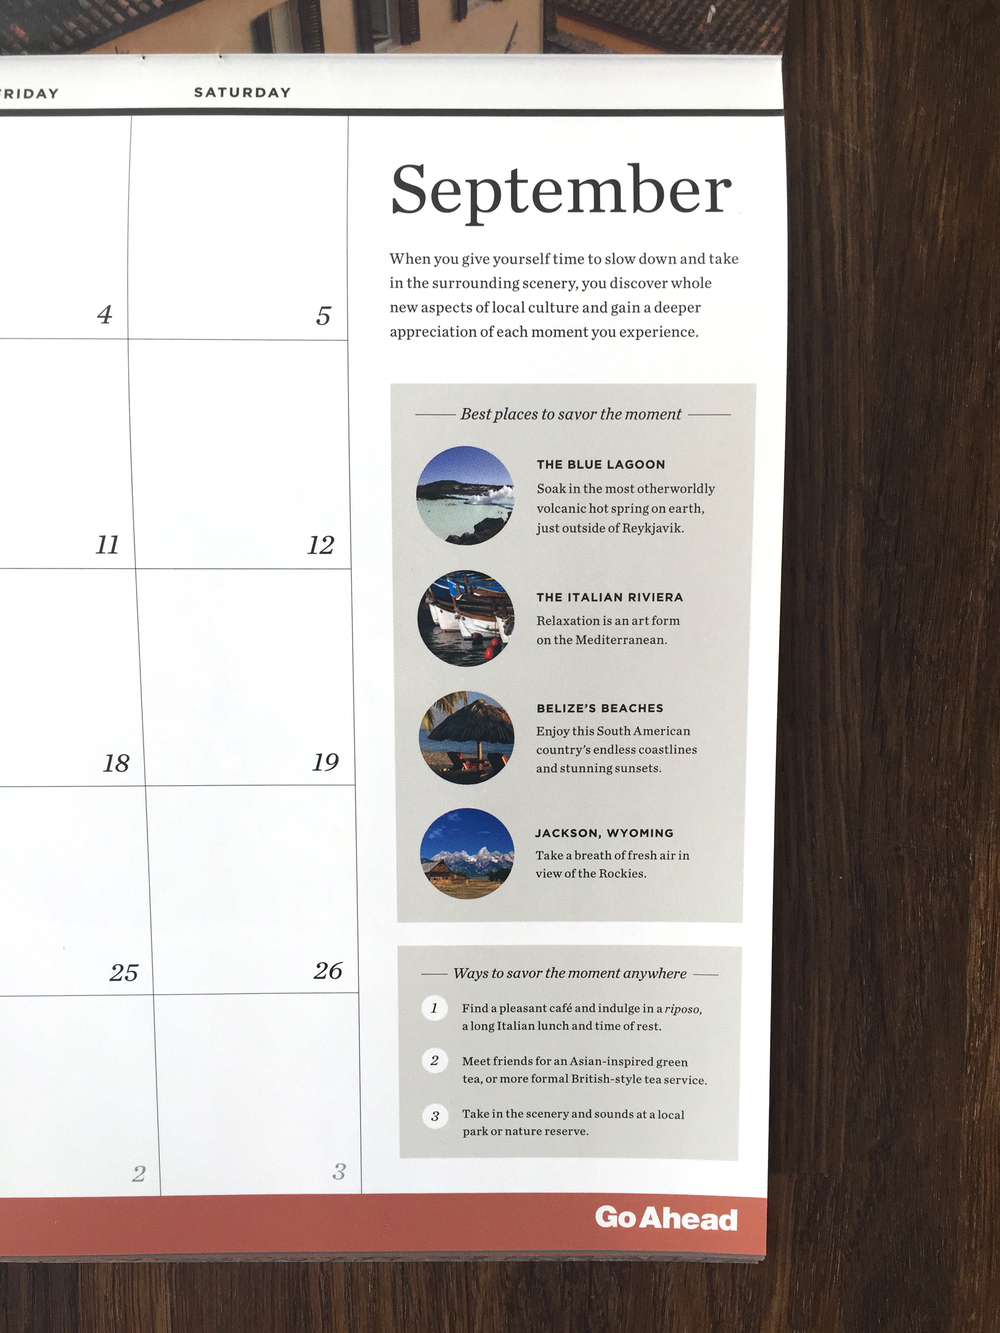 Calendar_September closeup2.jpg